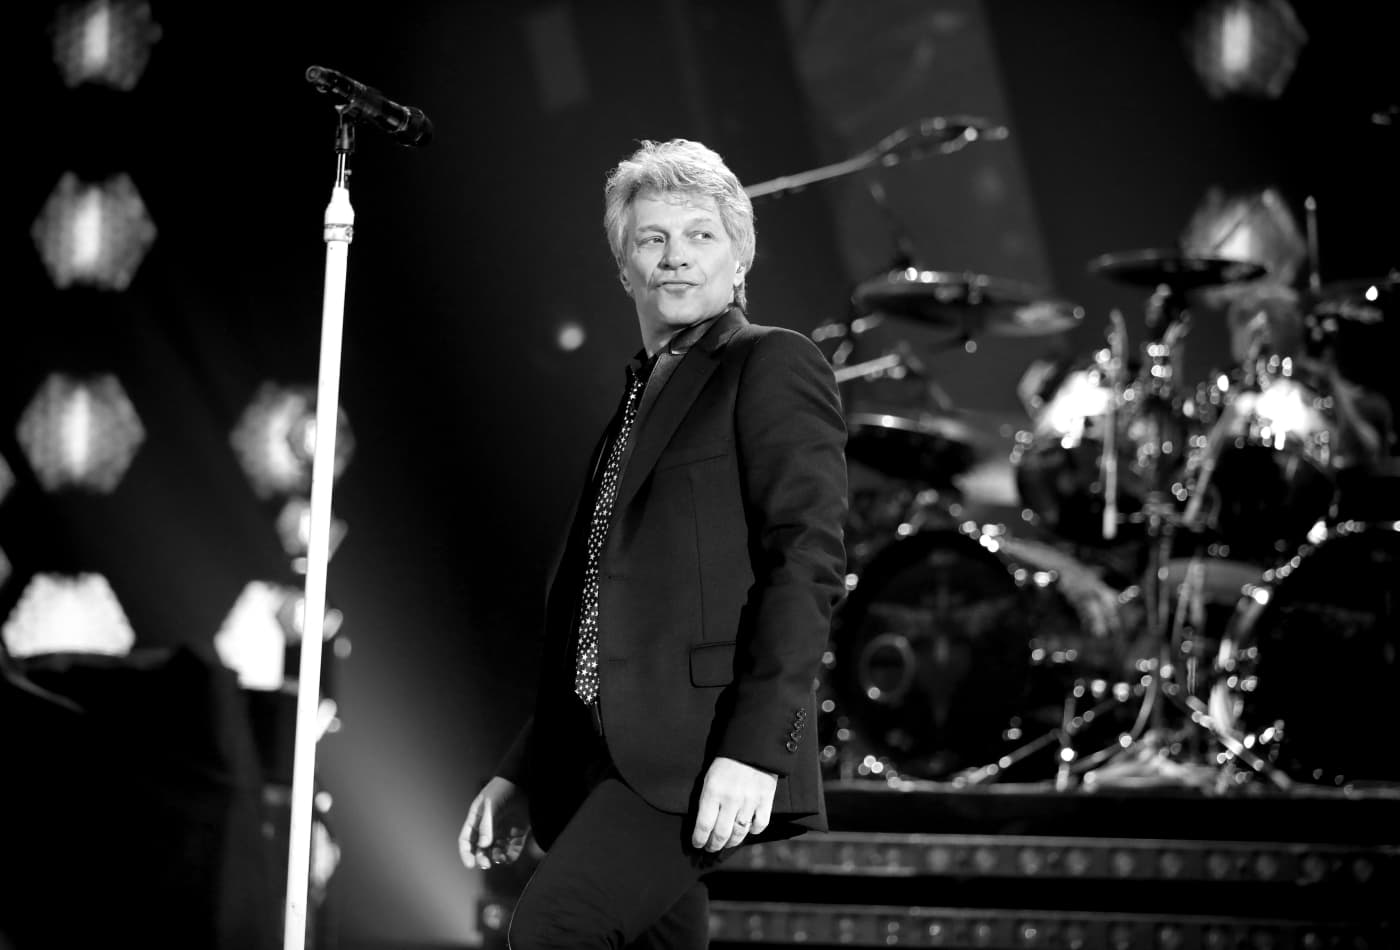 Jon Bon Jovi: This is the key to succeeding in business